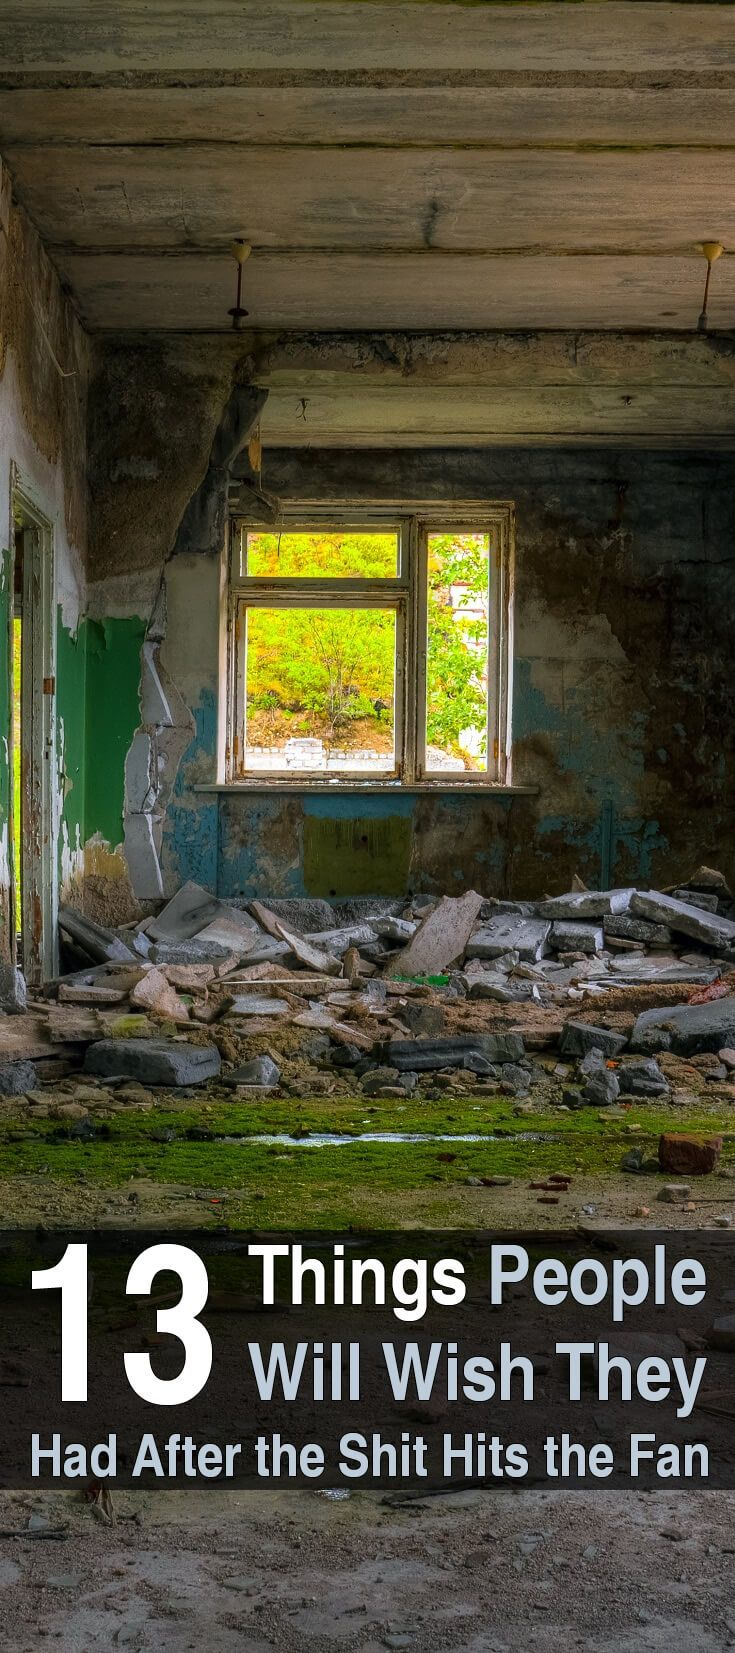 When the SHTF, people with no skills or supplies will quickly realize that a few basic survival items can mean the difference between life and death.